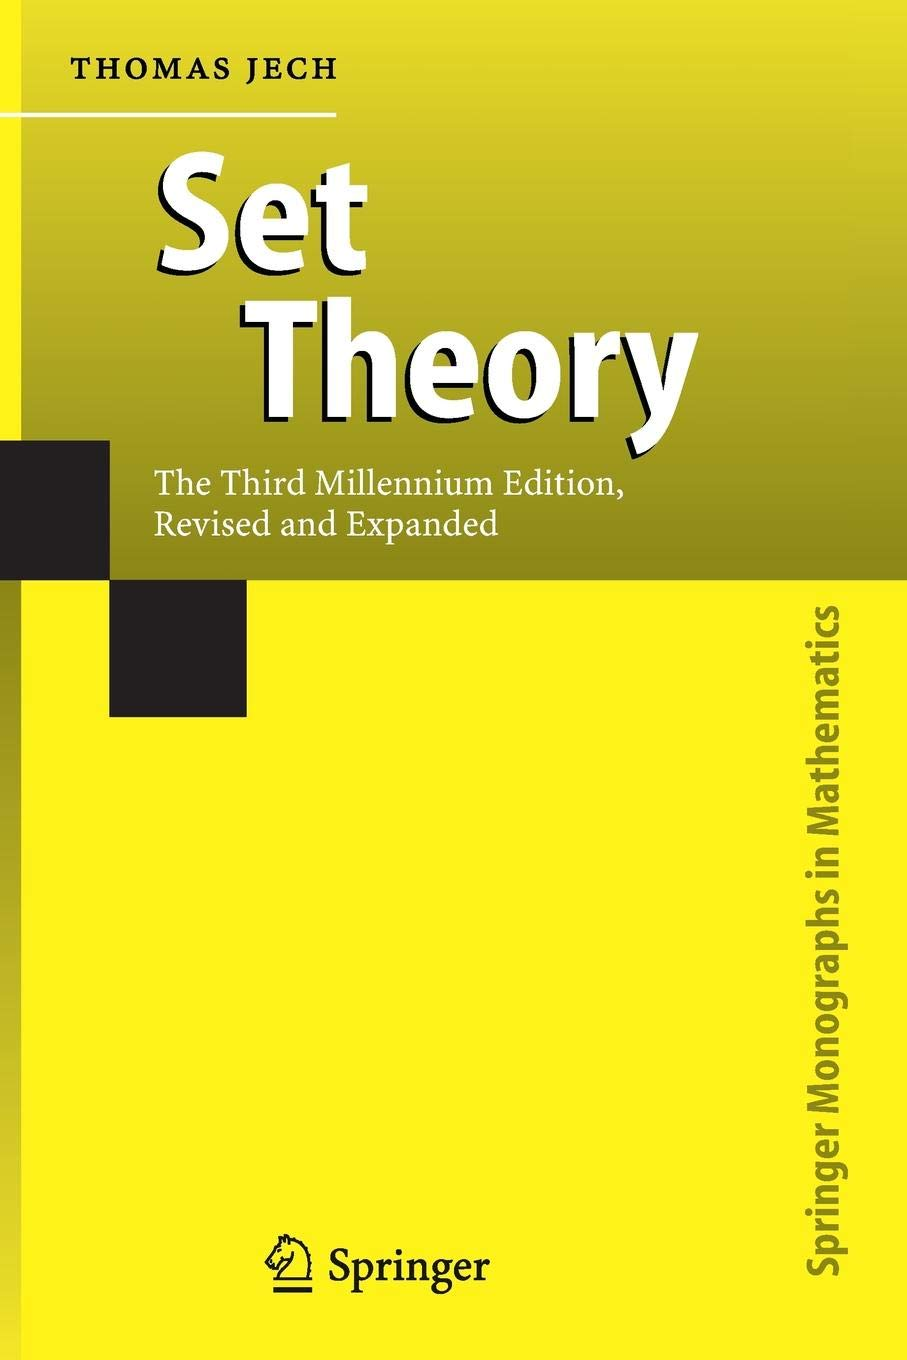 Set Theory: The Third Millennium Edition revised and expanded (Springer Monographs in Mathematics)